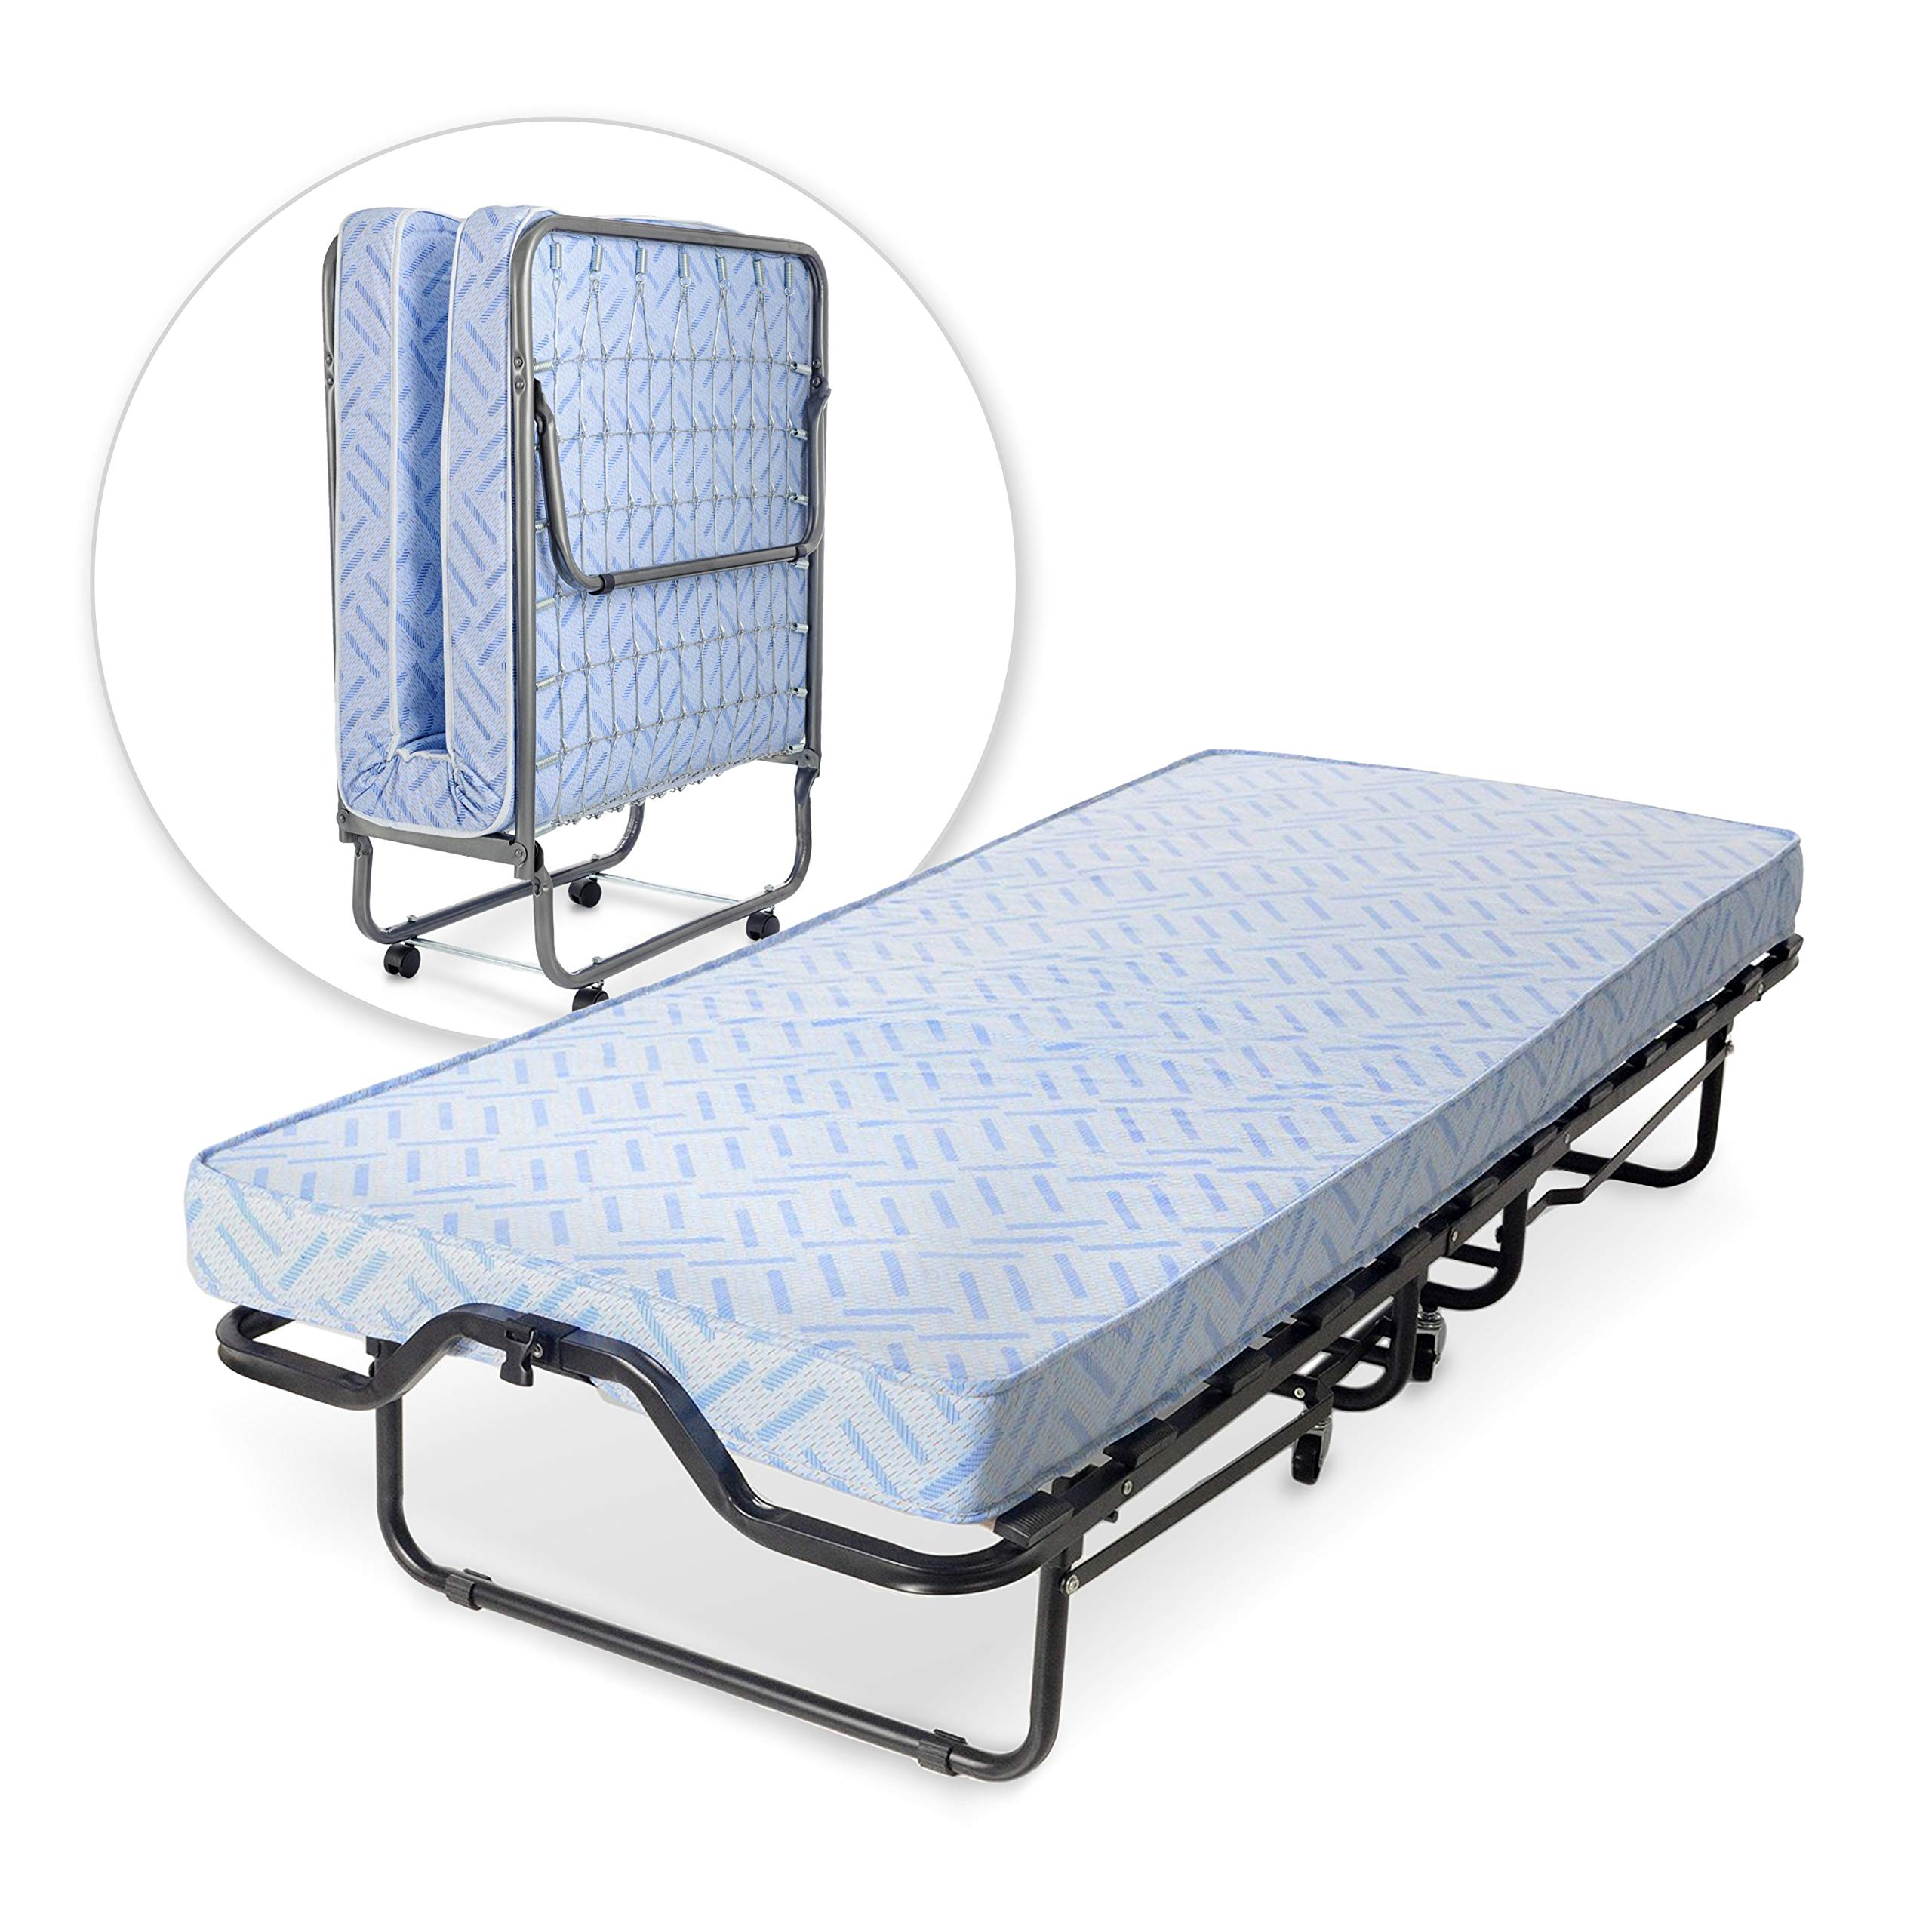 Milliard Lightweight Folding Bed with Mattress - Cot Size -74 by 31-Inches by Milliard